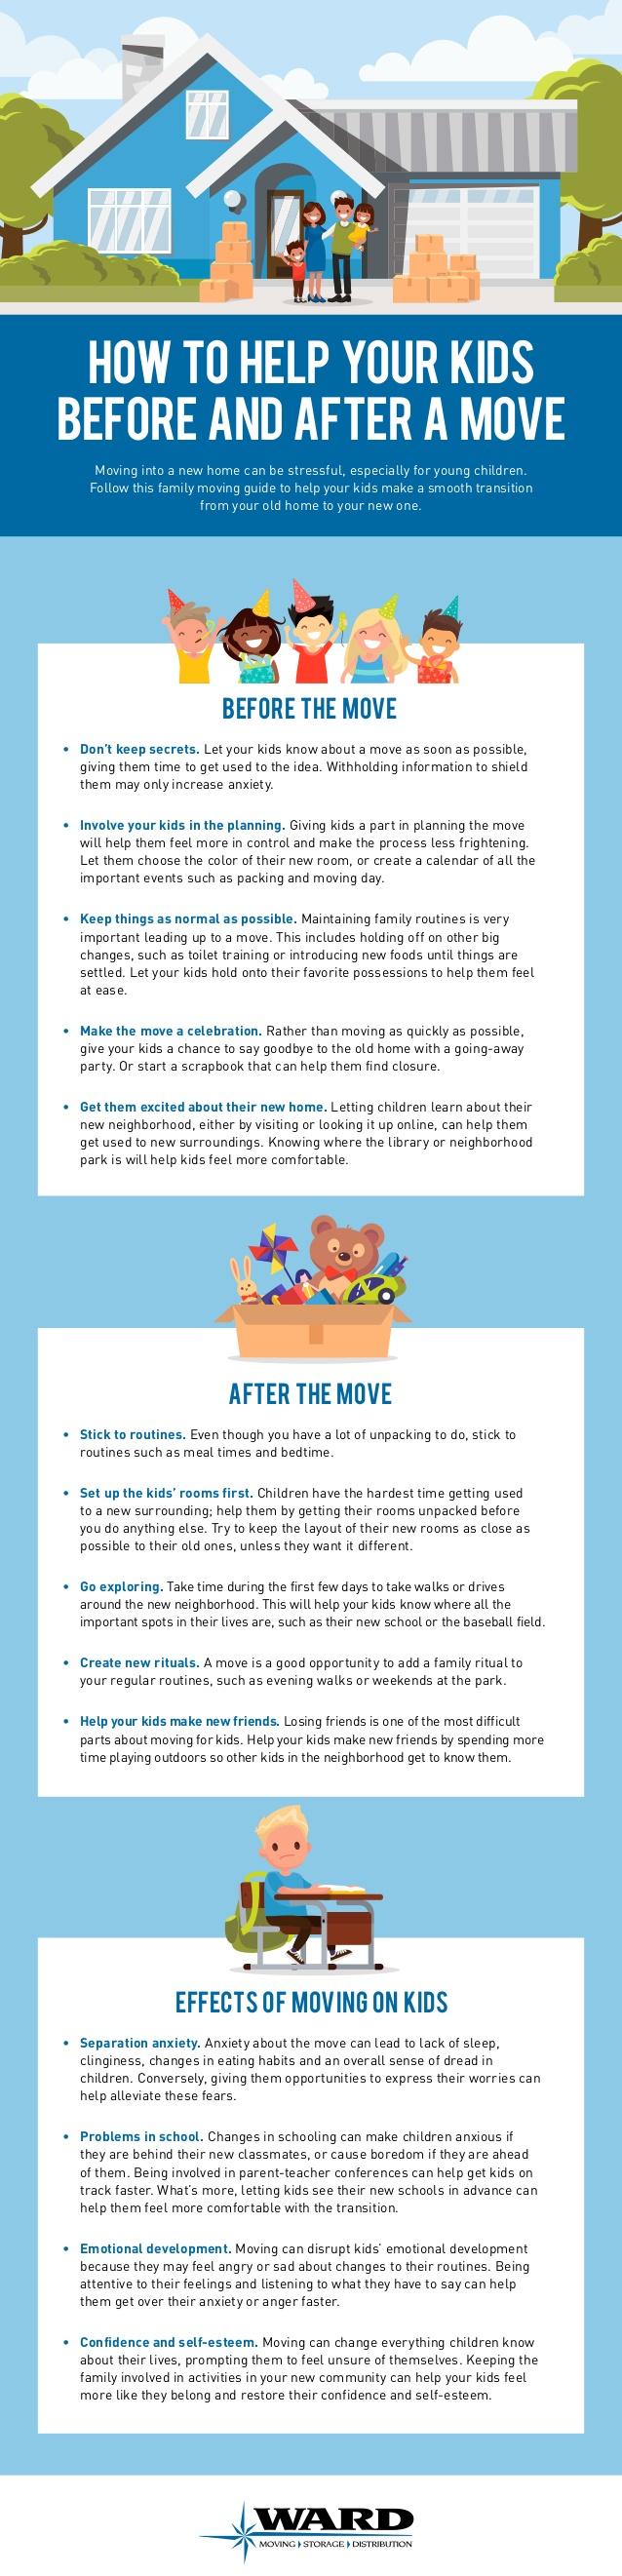 helping-kids-before-and-after-a-move-guide-1-638.jpg